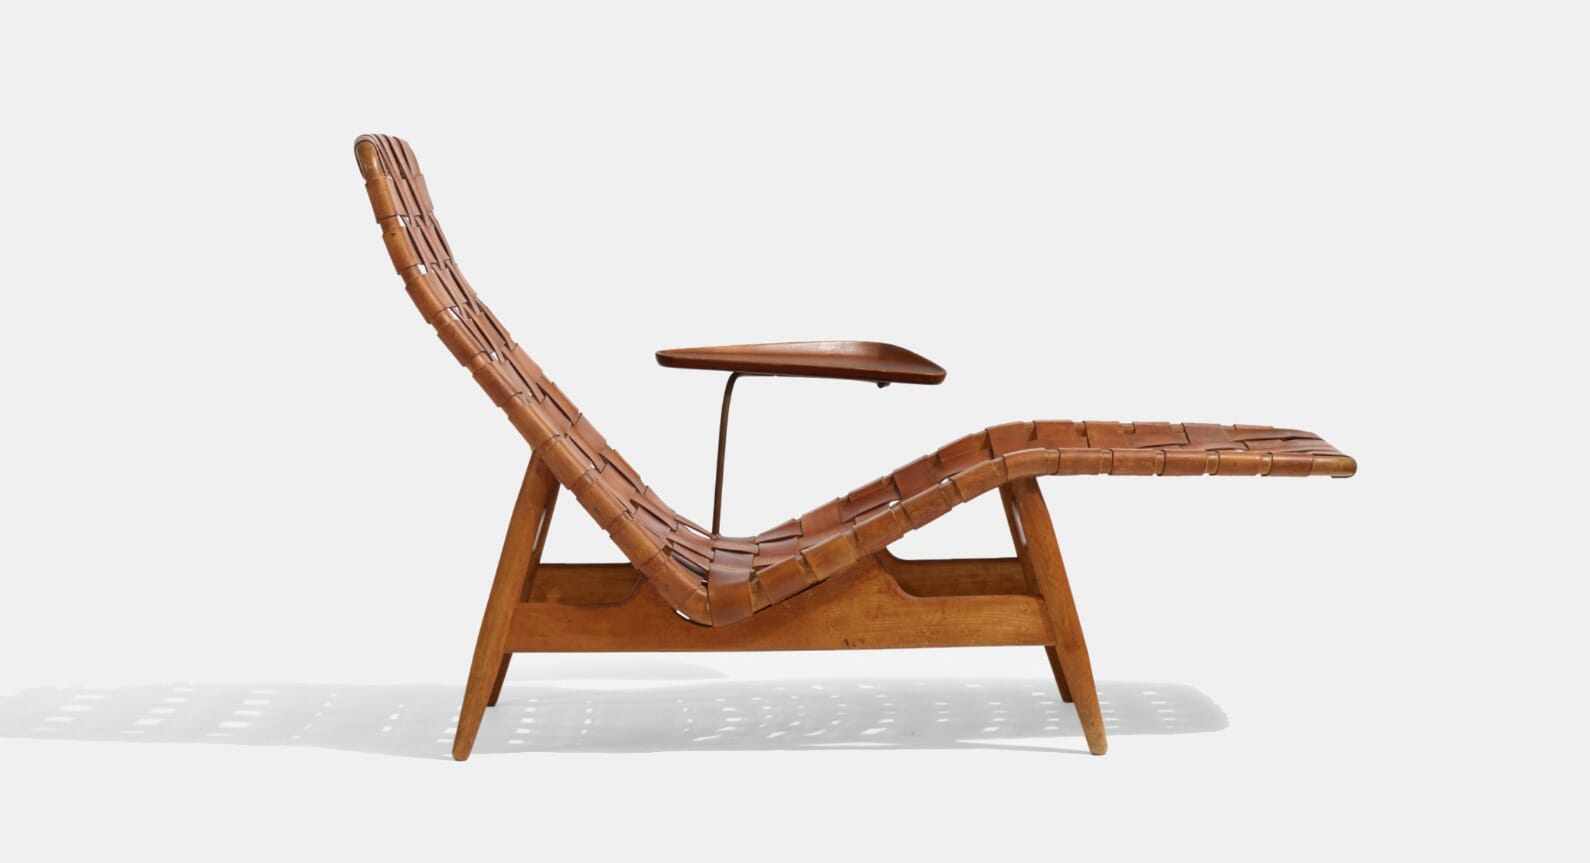 5 Highlights From The Wright Scandinavian Design Auction